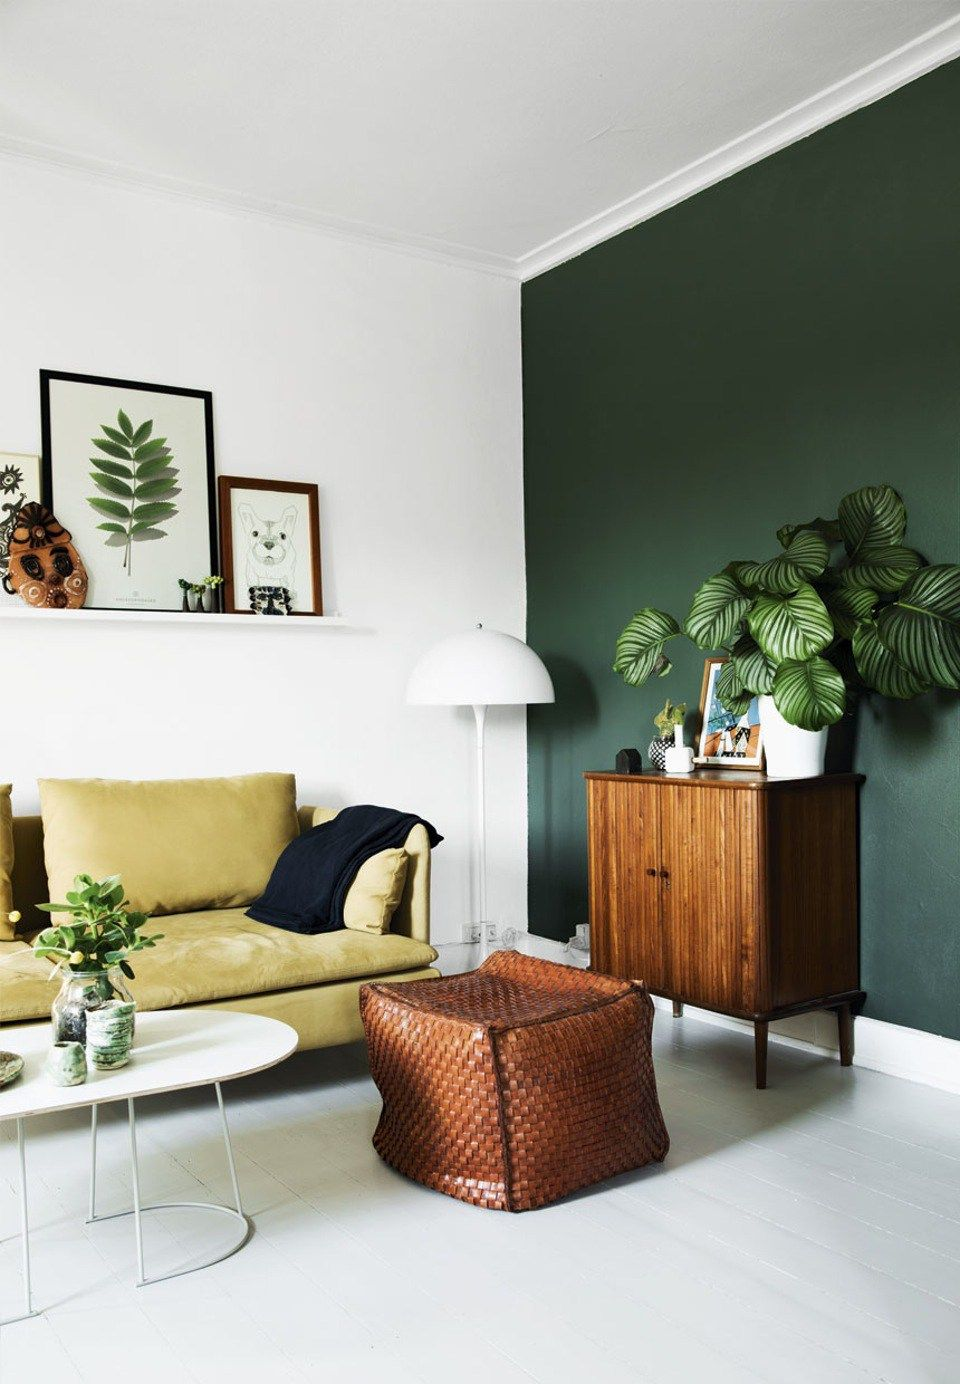 Teksten Op Muur Woonkamer 15 Ideas For Decorating With Hunter Green Home Living Rooms